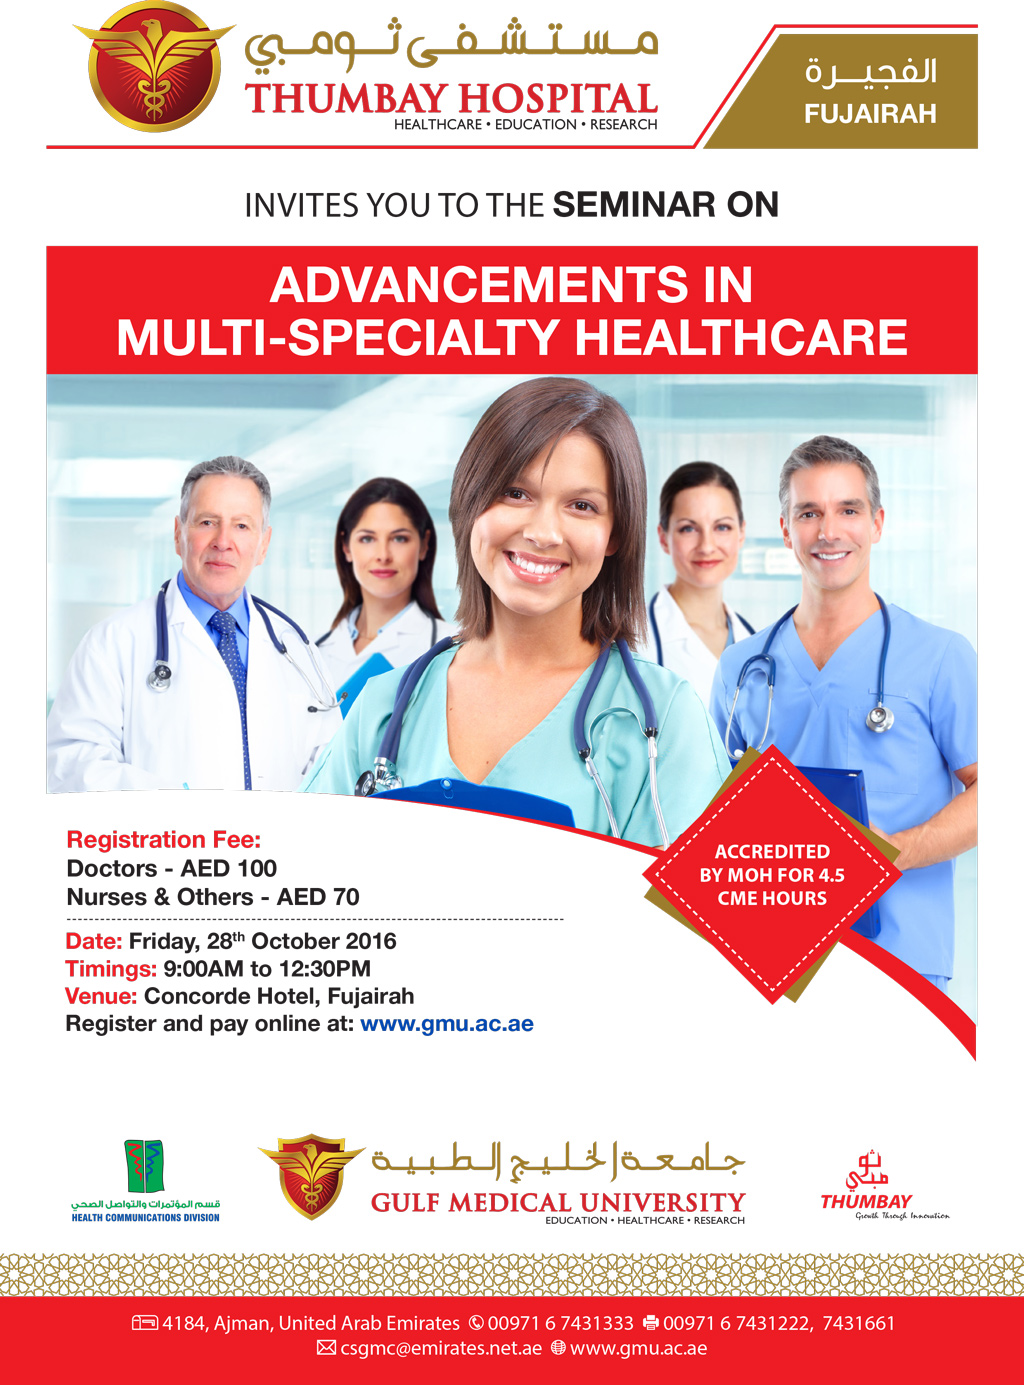 Seminar on Advancements in Multi-Specialty Healthcare